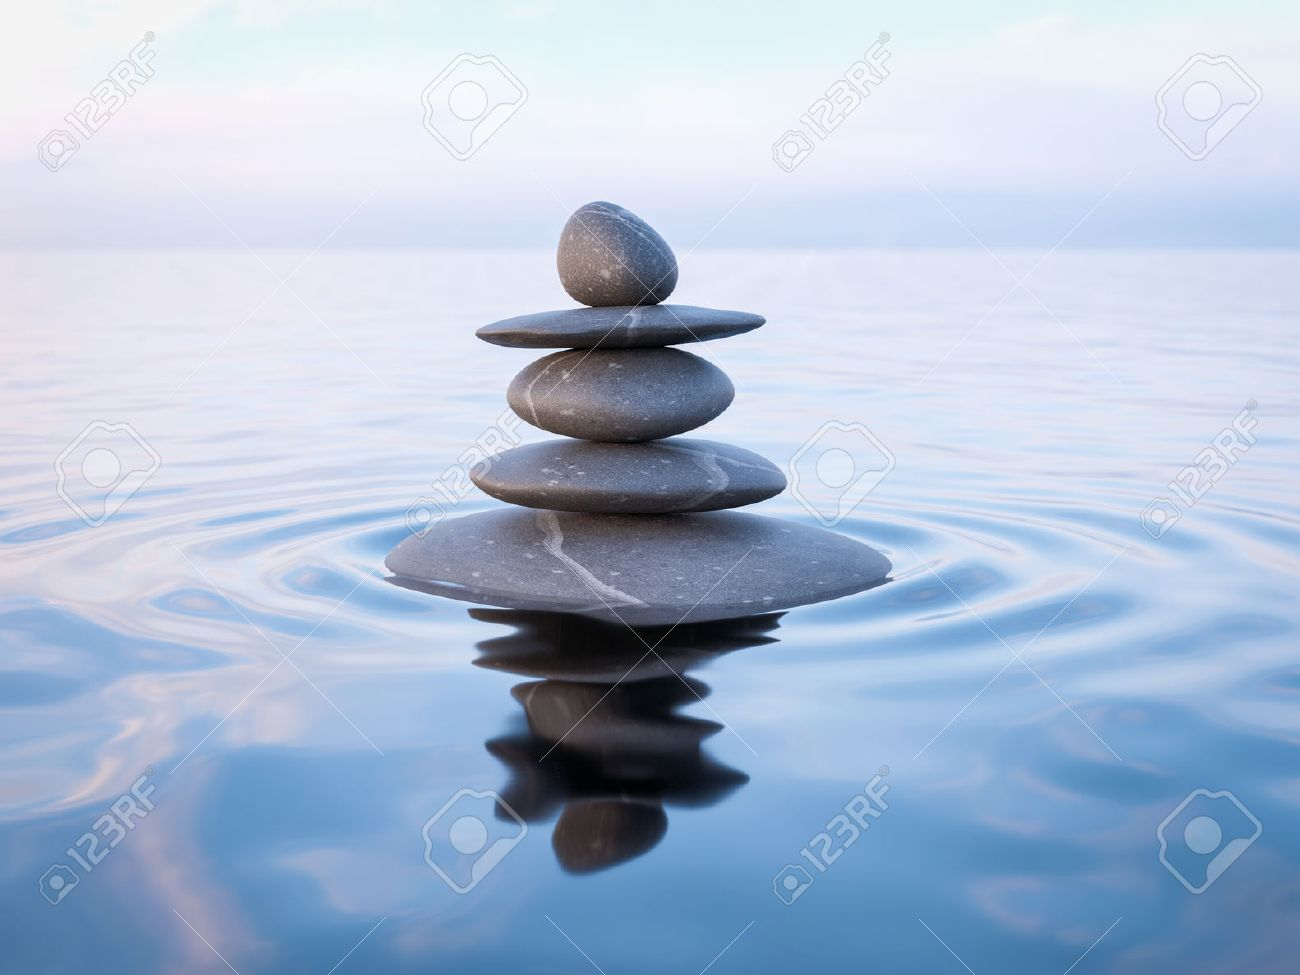 3d Rendering Of Zen Stones In Water With Reflection Peace